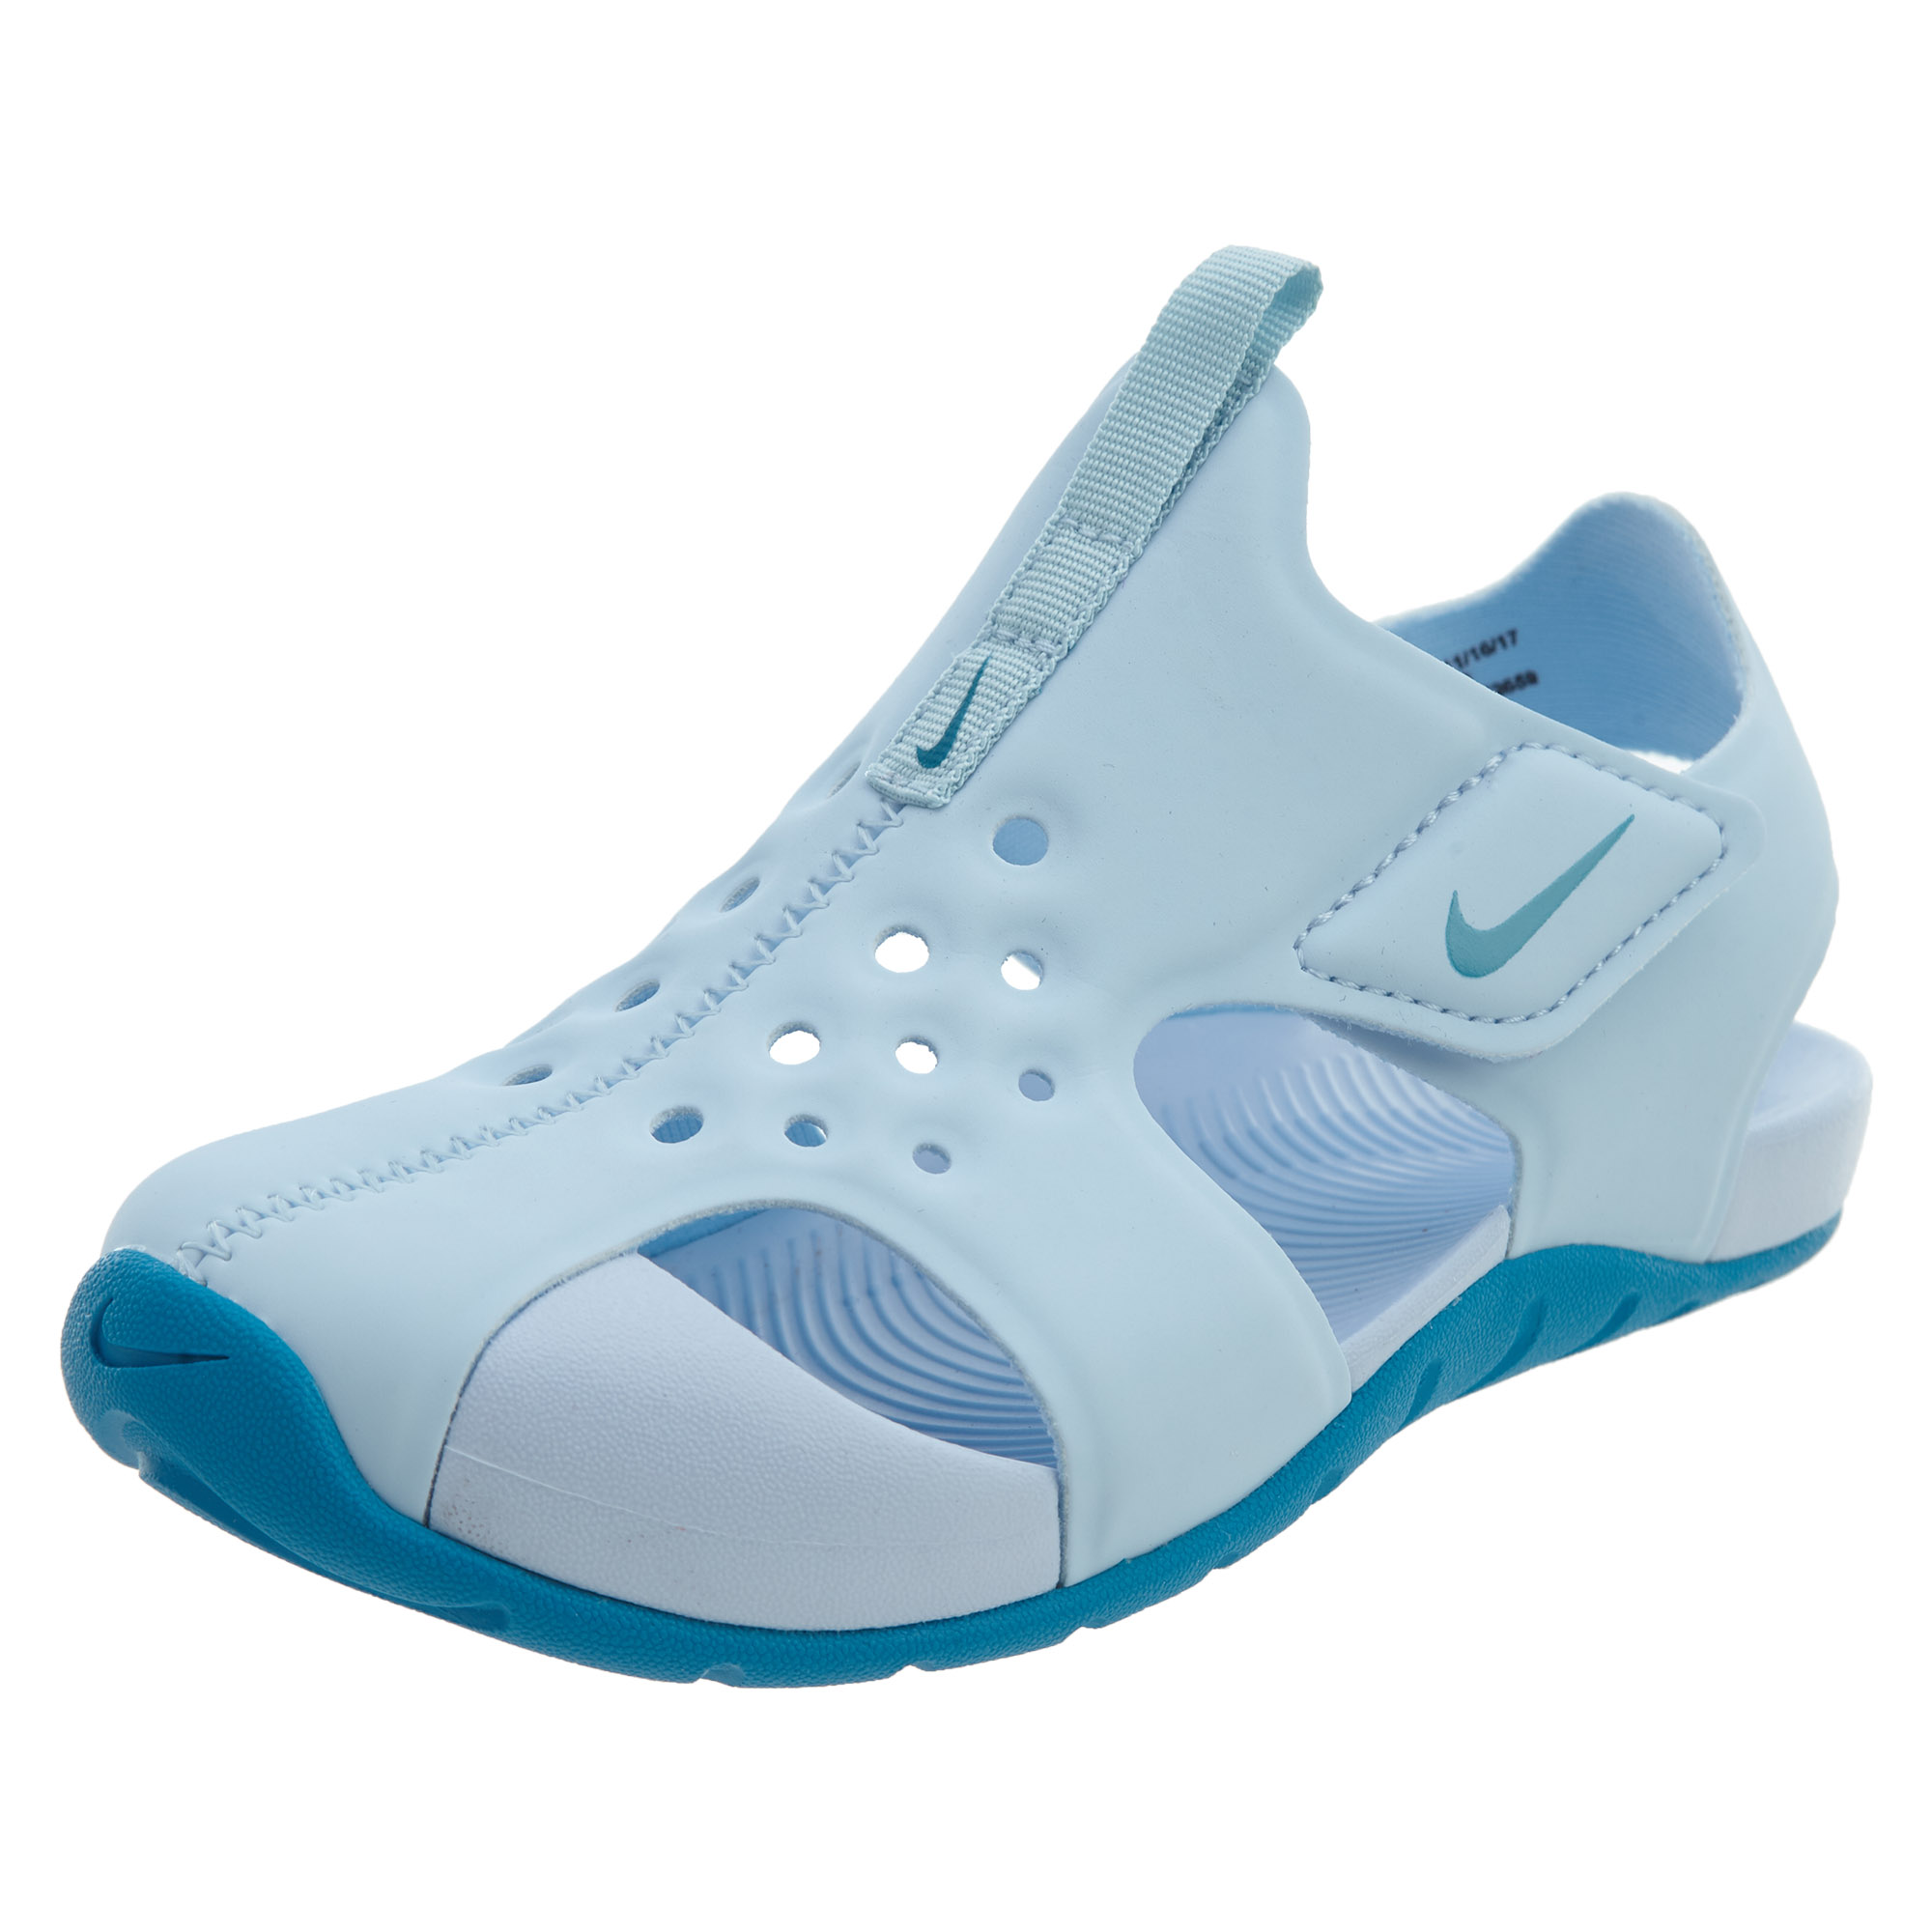 444633e82155 Details about Nike Little Kids Sunray Protect 2 Sandals 943828-400